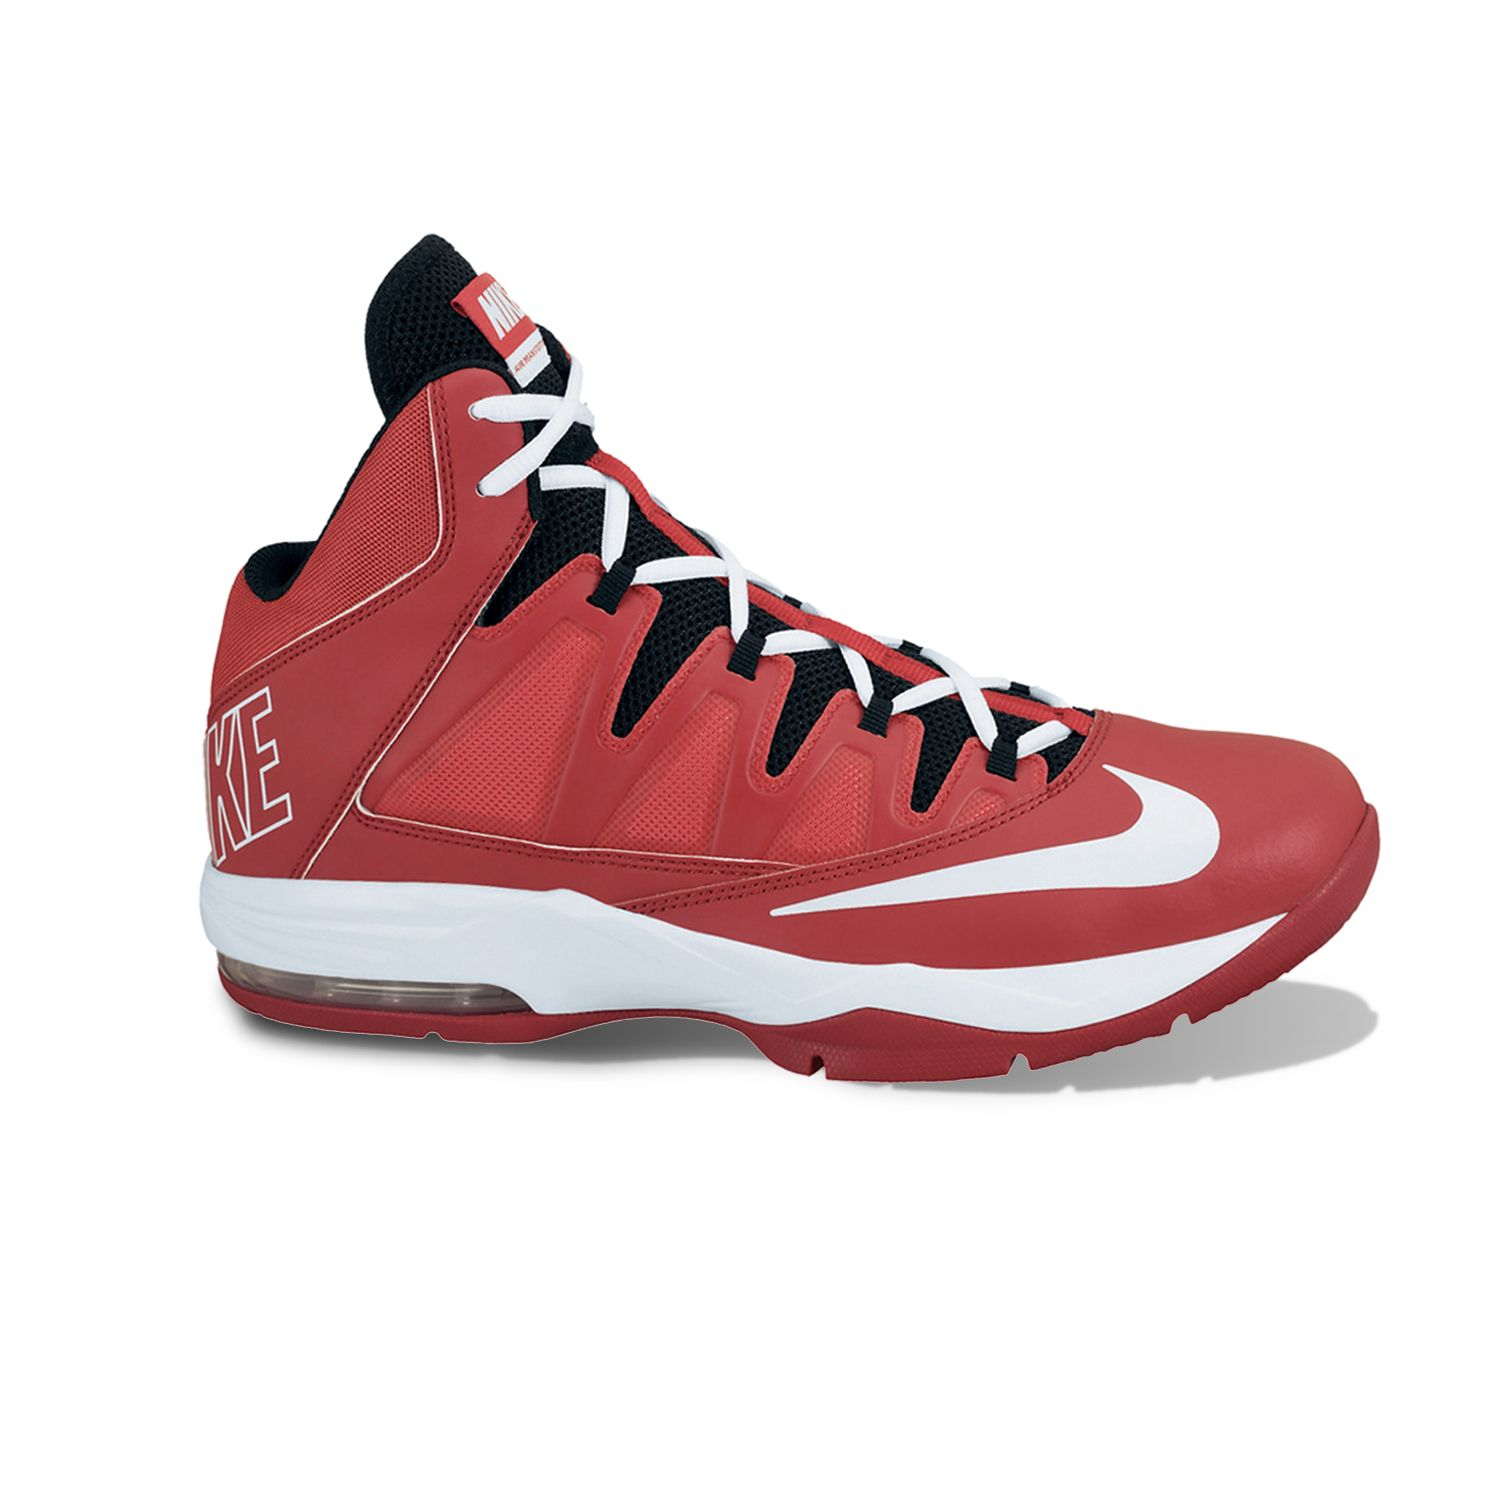 Nike Red Air Max Stutter Step High-Performance Basketball Shoes - Men